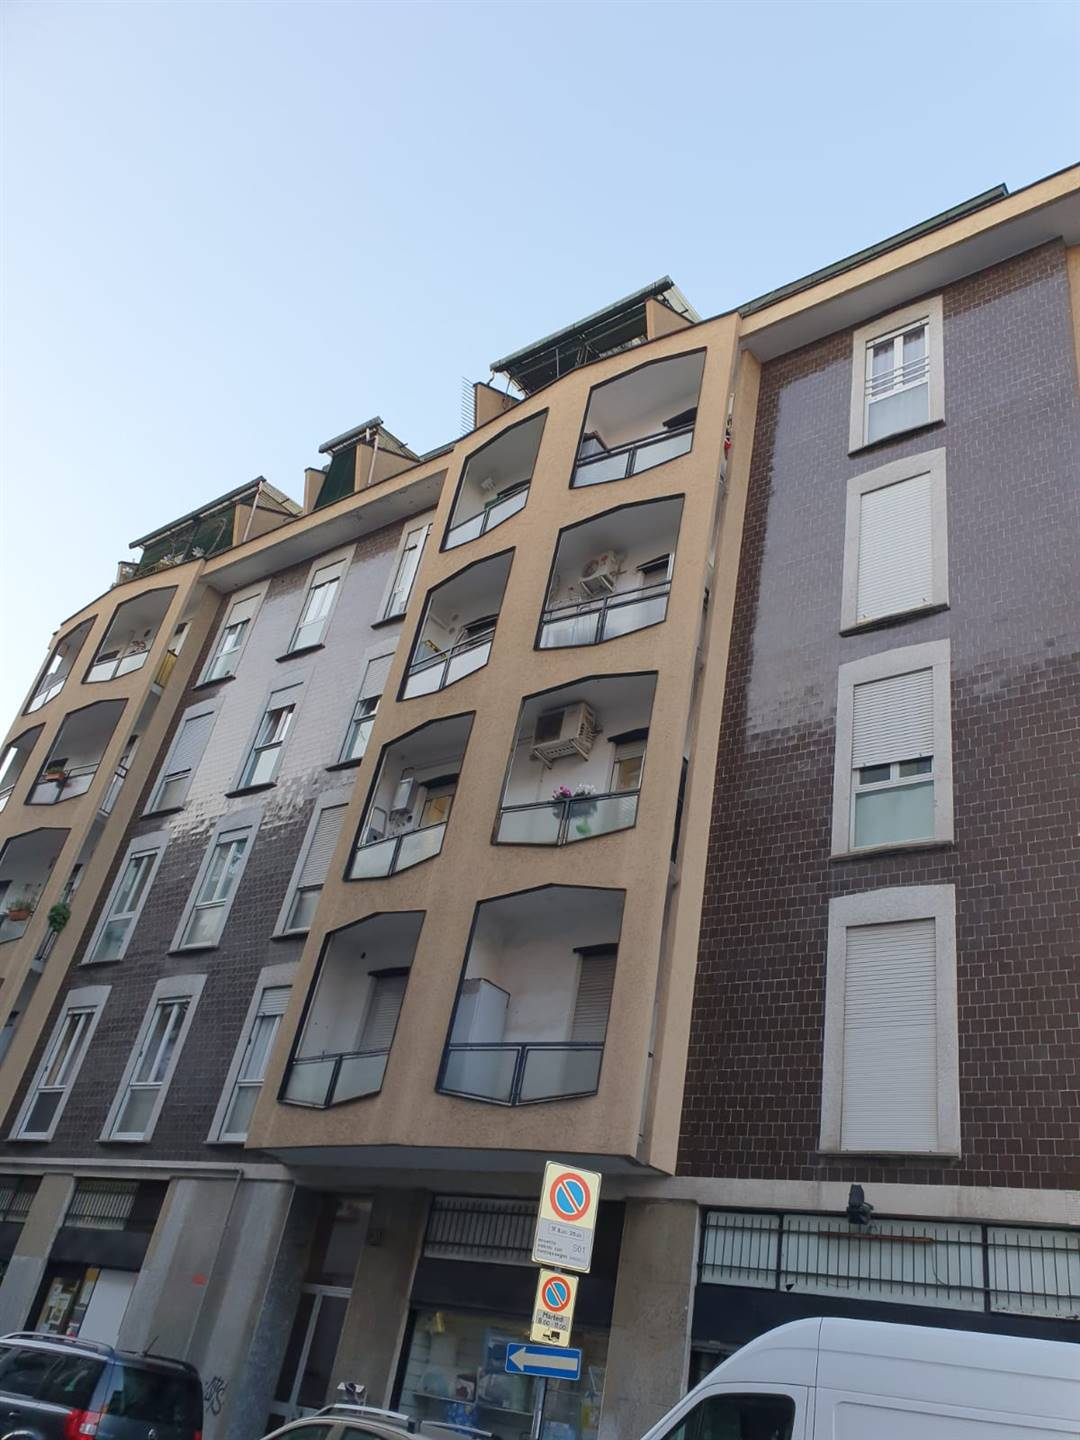 SESTO SAN GIOVANNI, Apartment for sale of 55 Sq. mt., Habitable, Heating Centralized, Energetic class: G, Epi: 175 kwh/m2 year, placed at 4° on 6,